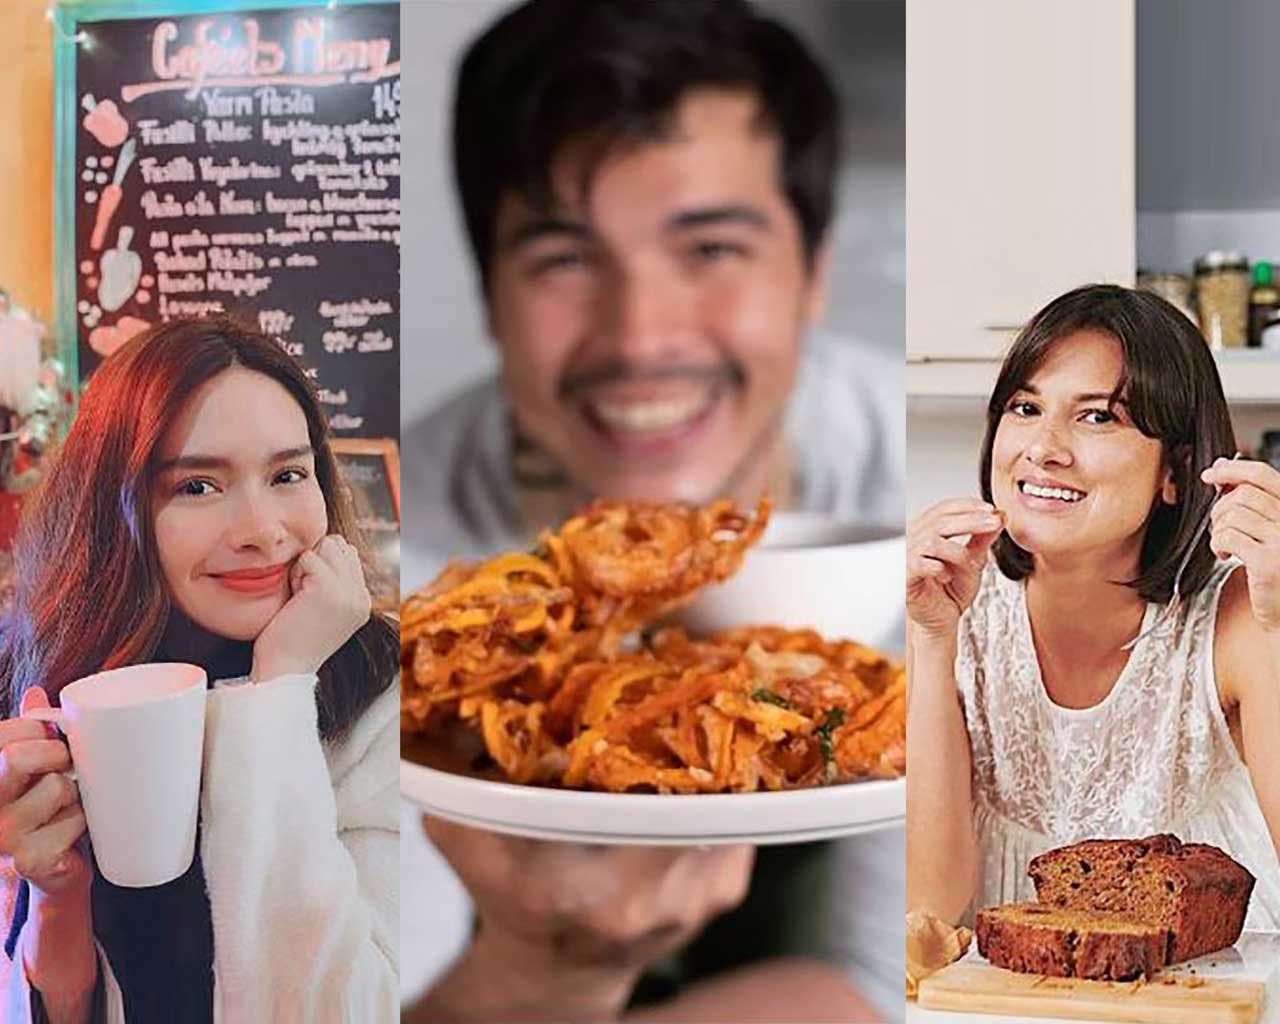 Comfort Food A la Celeb: Carbonara, Ukoy, and Banana Bread Recipes To Try